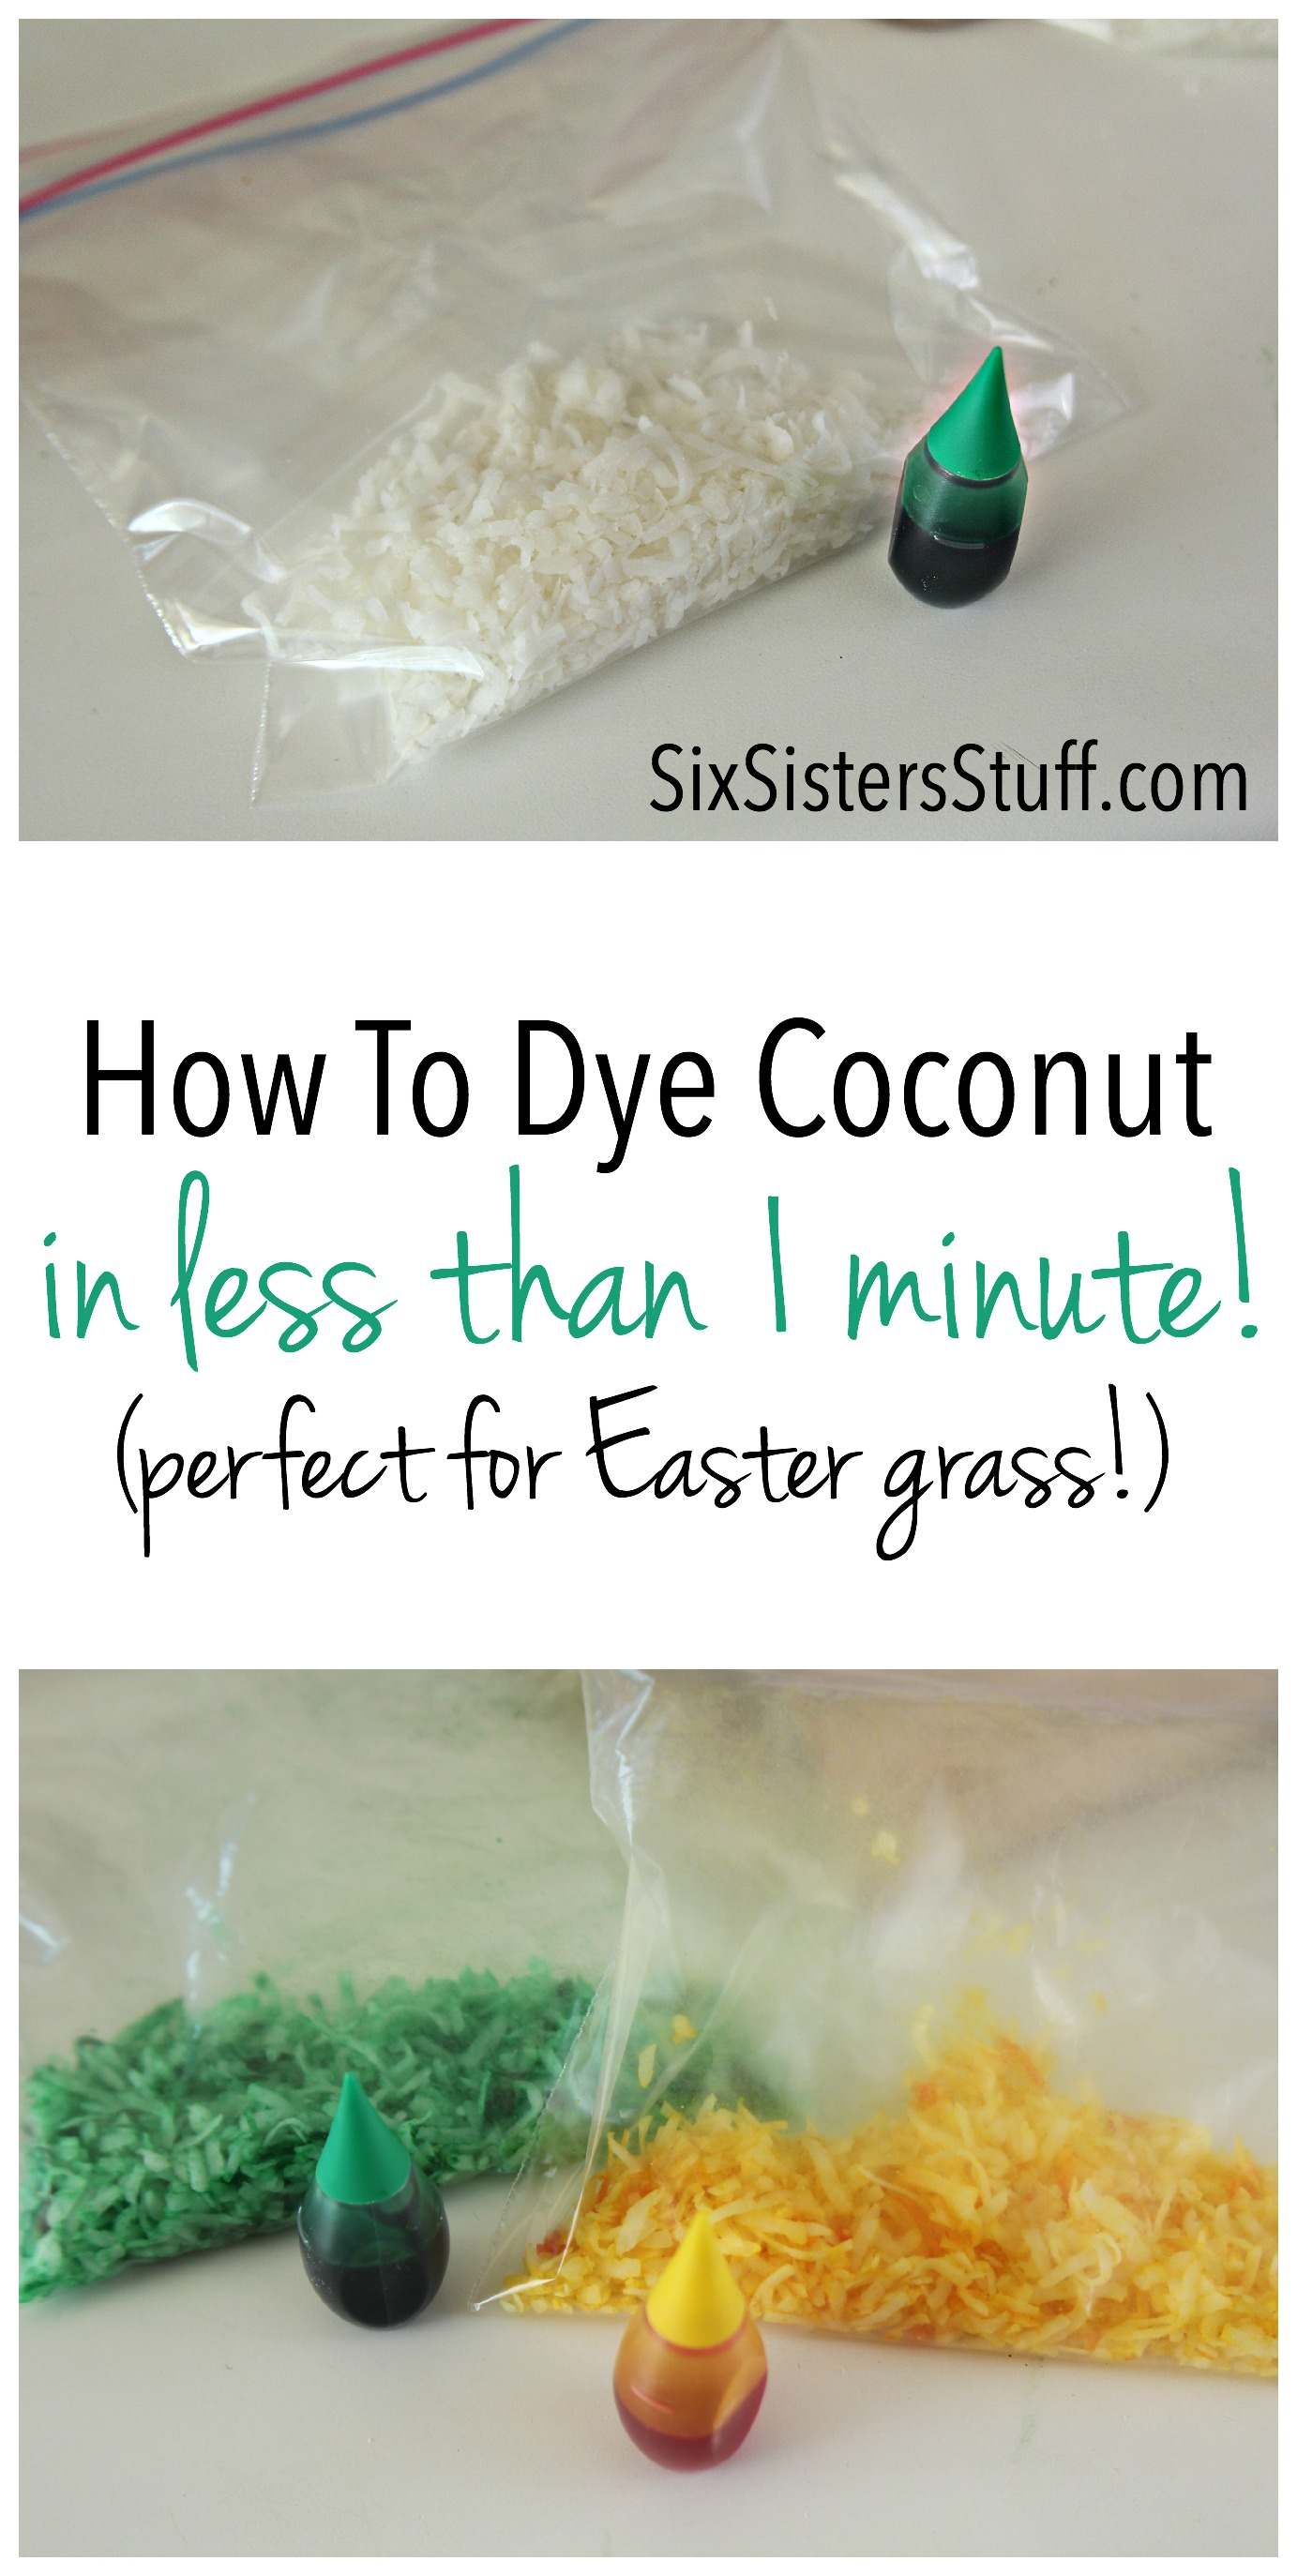 How To Dye Coconut on SixSistersStuff.com